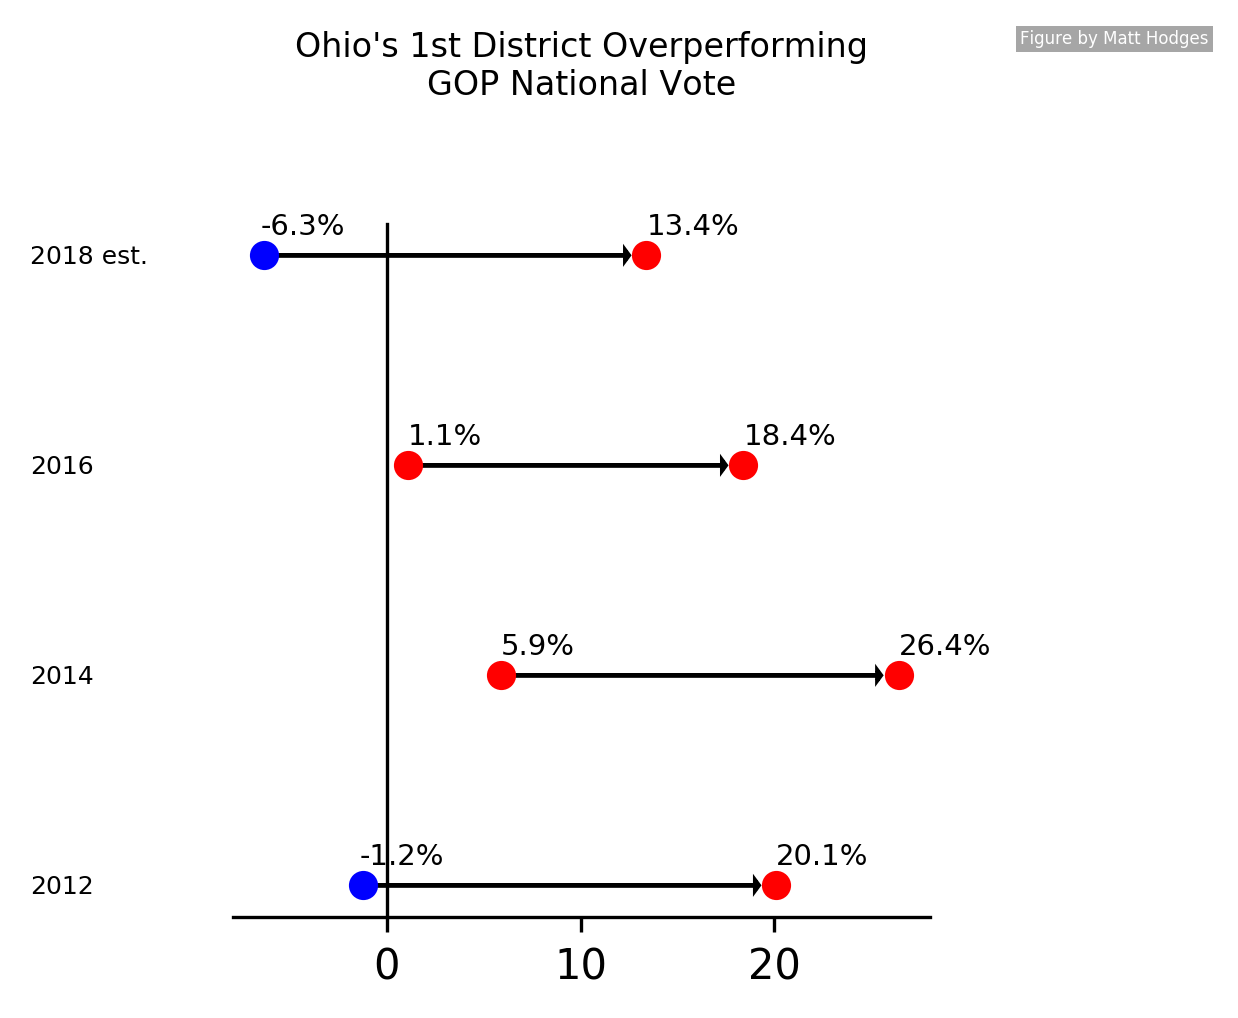 GOP Overperformance in Ohio's 1st District